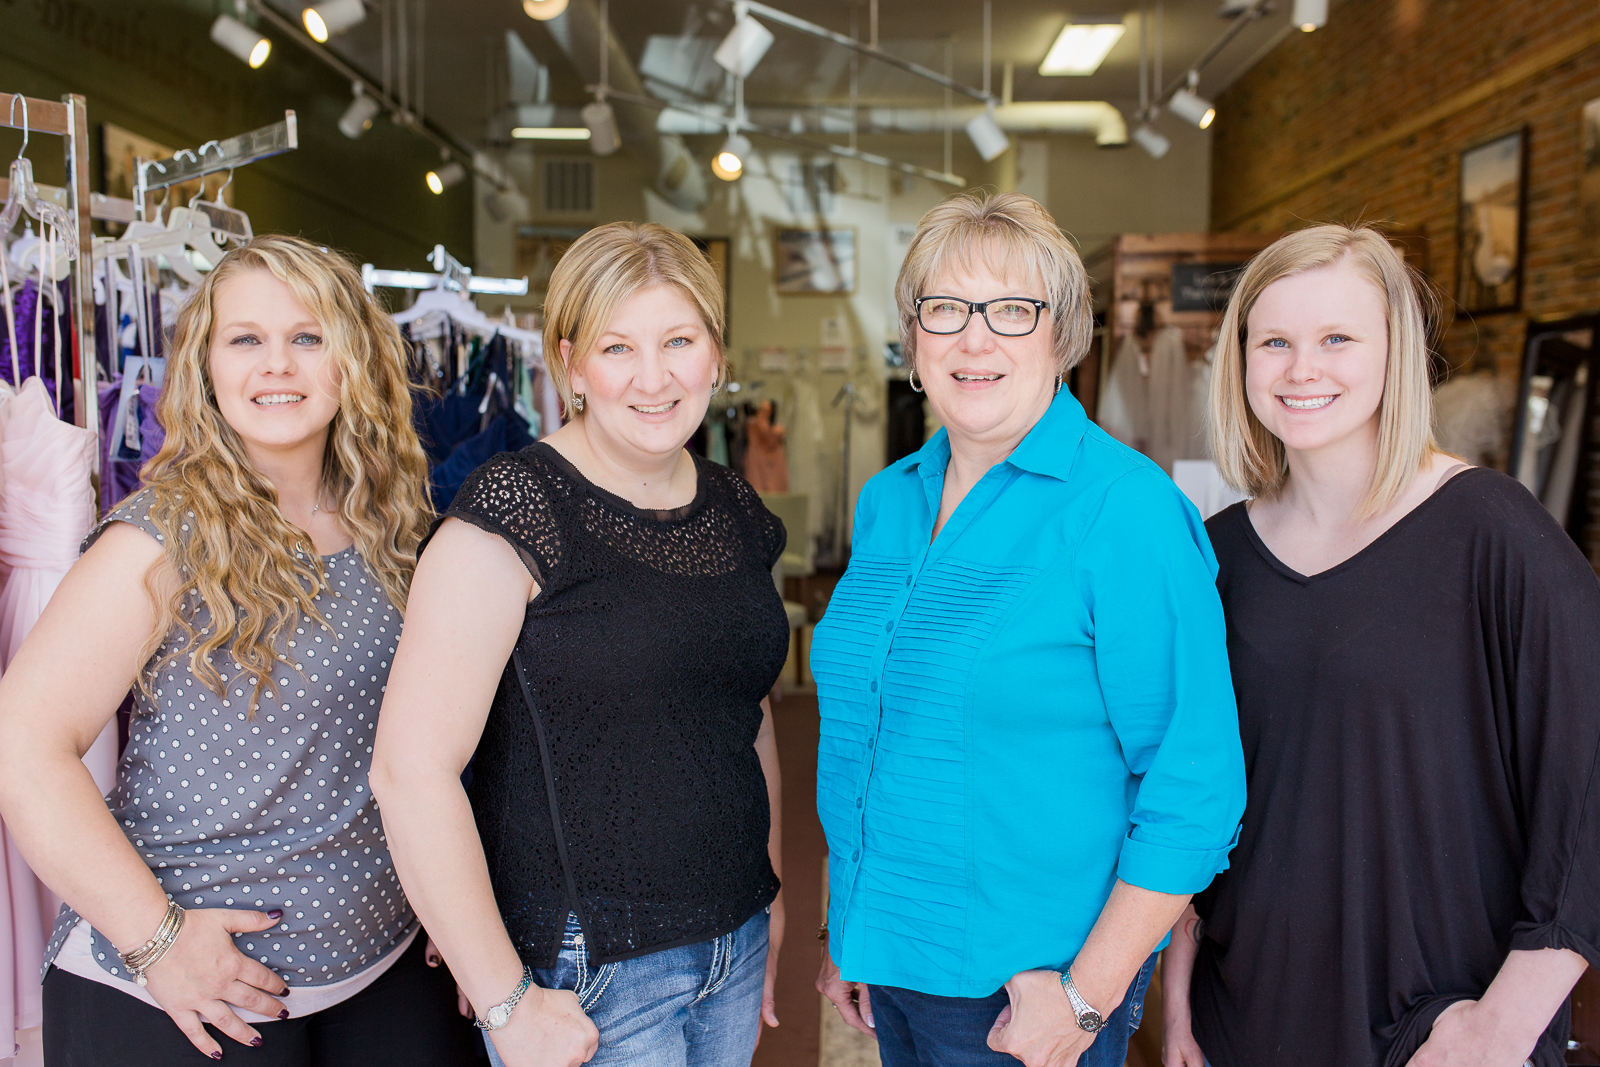 The team at Mountain Valley Bridal are so friendly and fun! I love getting to work with them on styled shoots and fun projects.